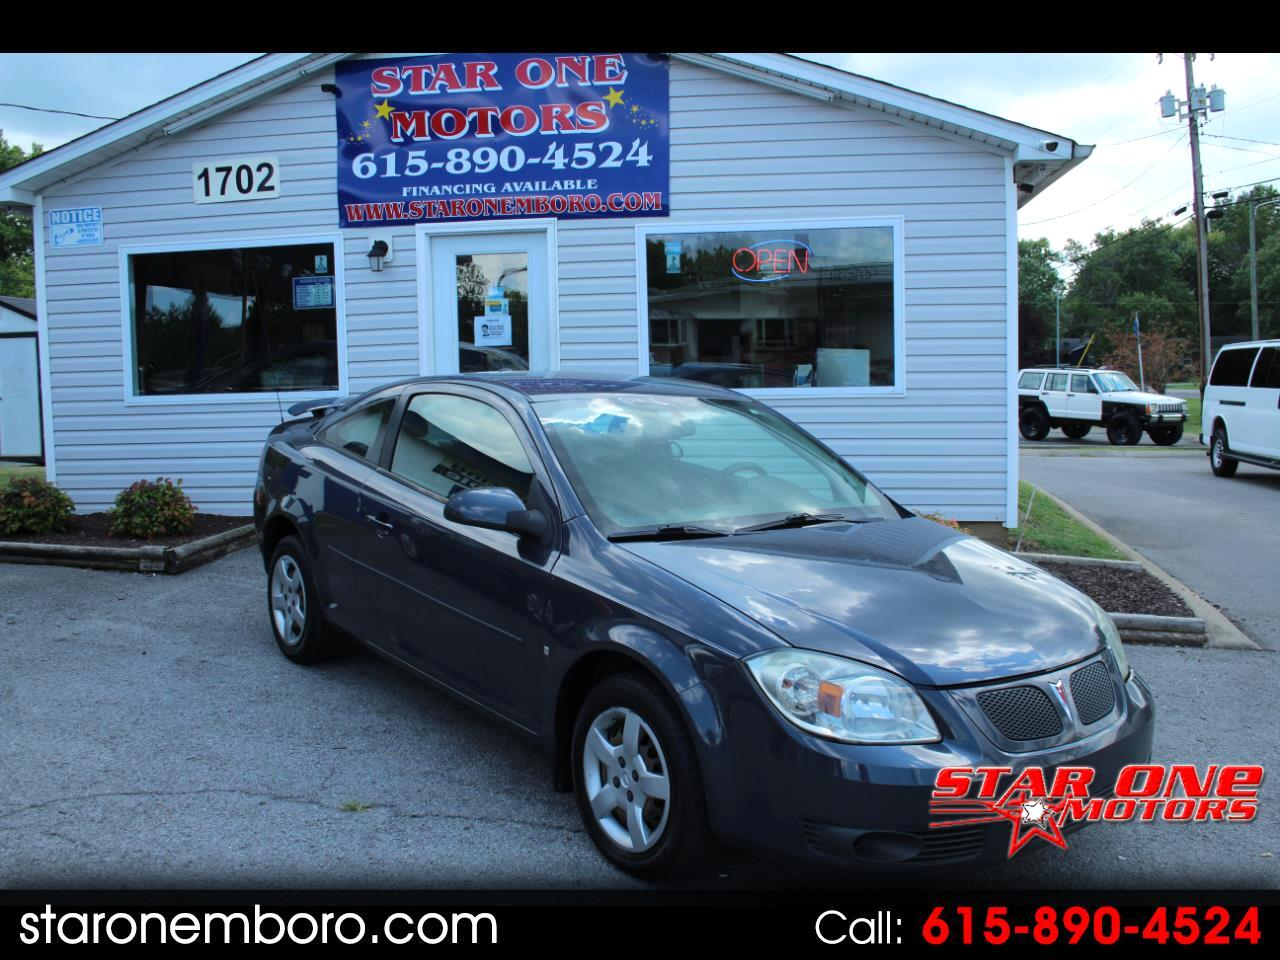 used 2009 pontiac g5 coupe for sale in murfreesboro tn 37130 star one motors star one motors